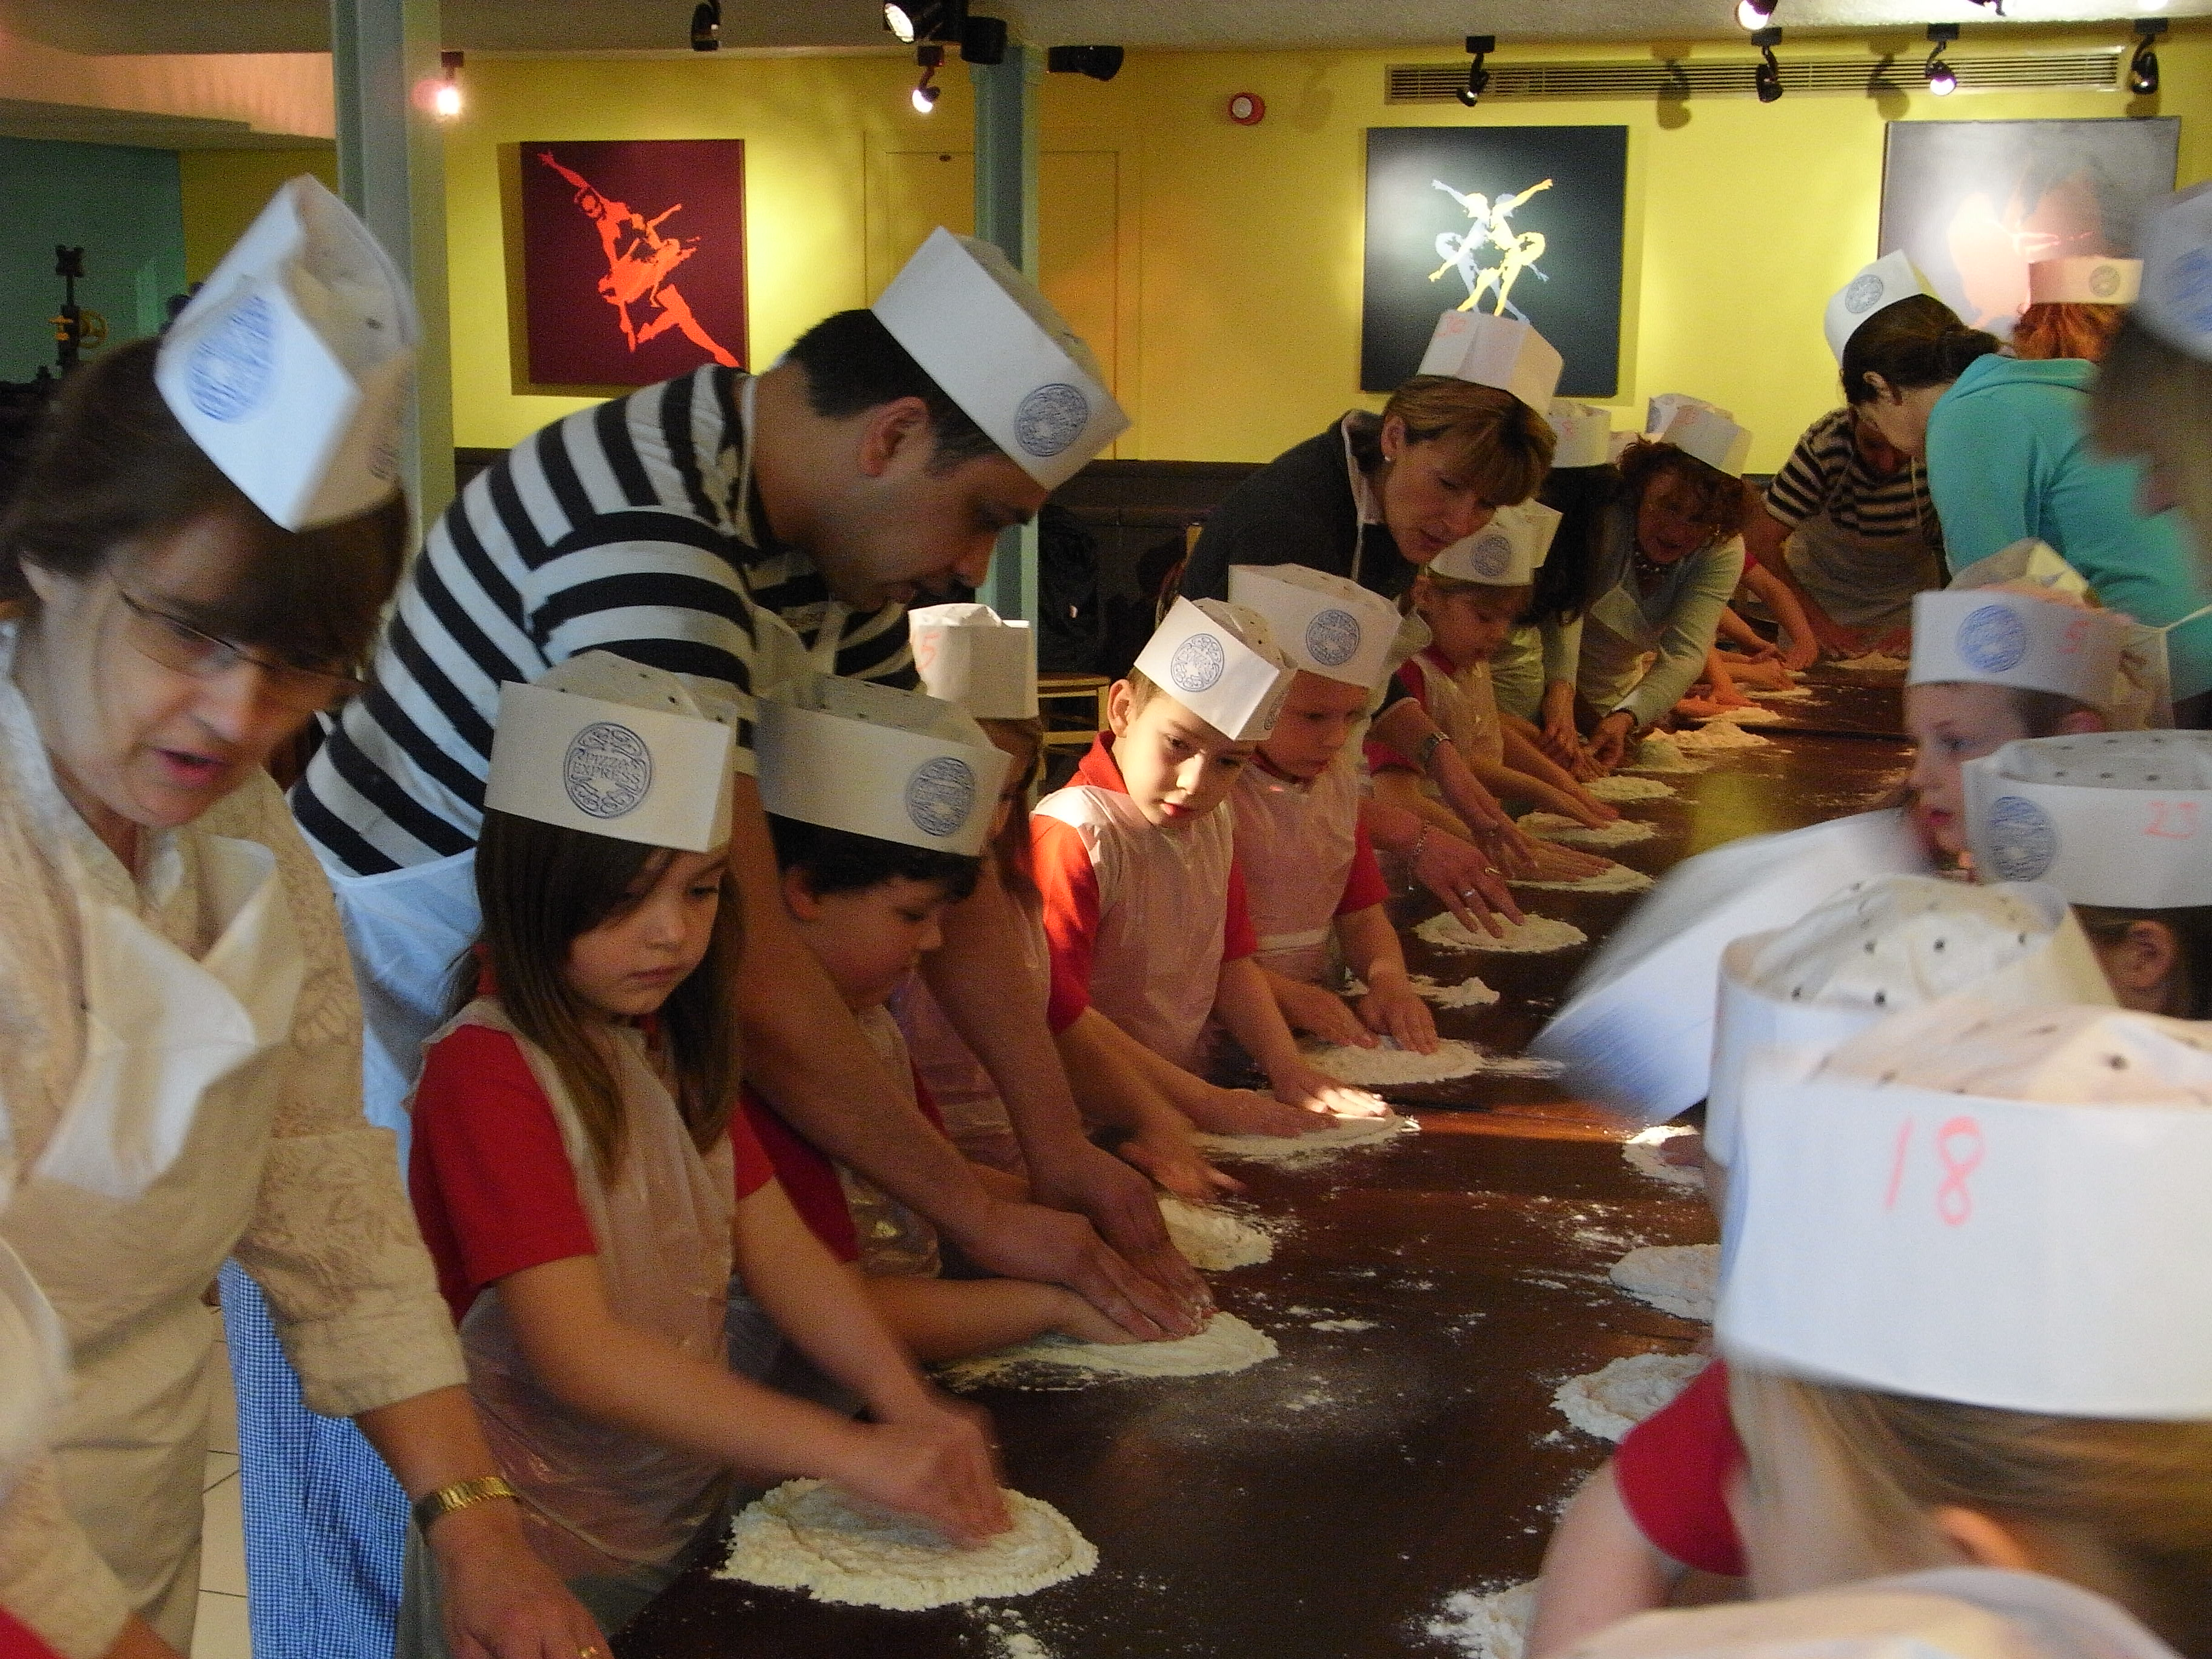 The youngsters enjoyed a hands-on visit to the restaurant